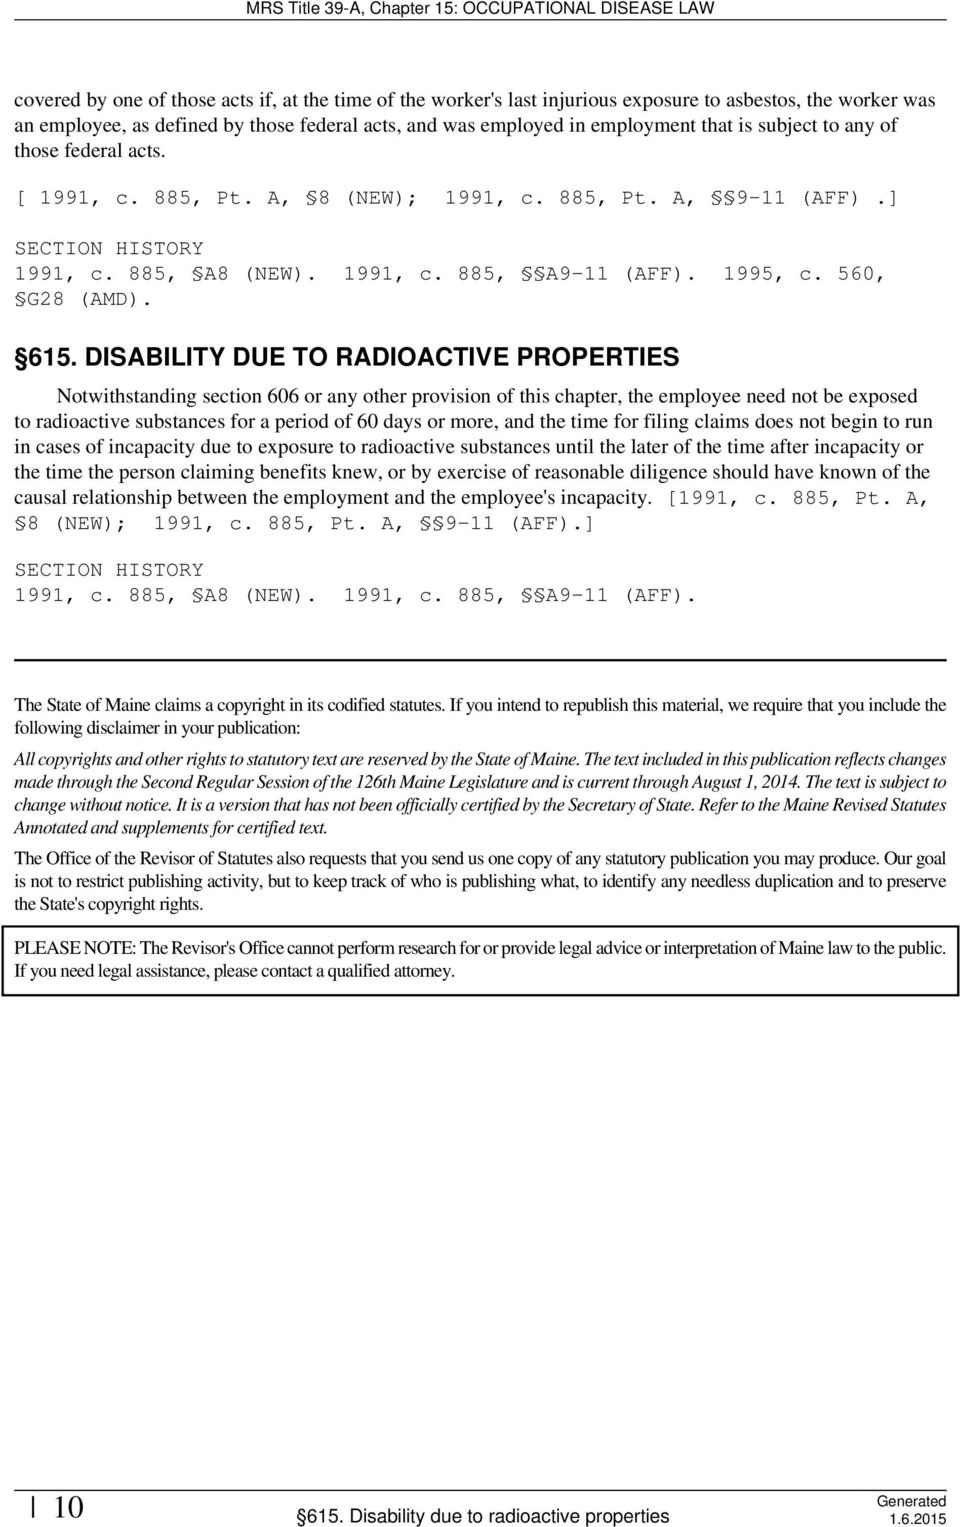 DISABILITY DUE TO RADIOACTIVE PROPERTIES Notwithstanding section 606 or any other provision of this chapter, the employee need not be exposed to radioactive substances for a period of 60 days or